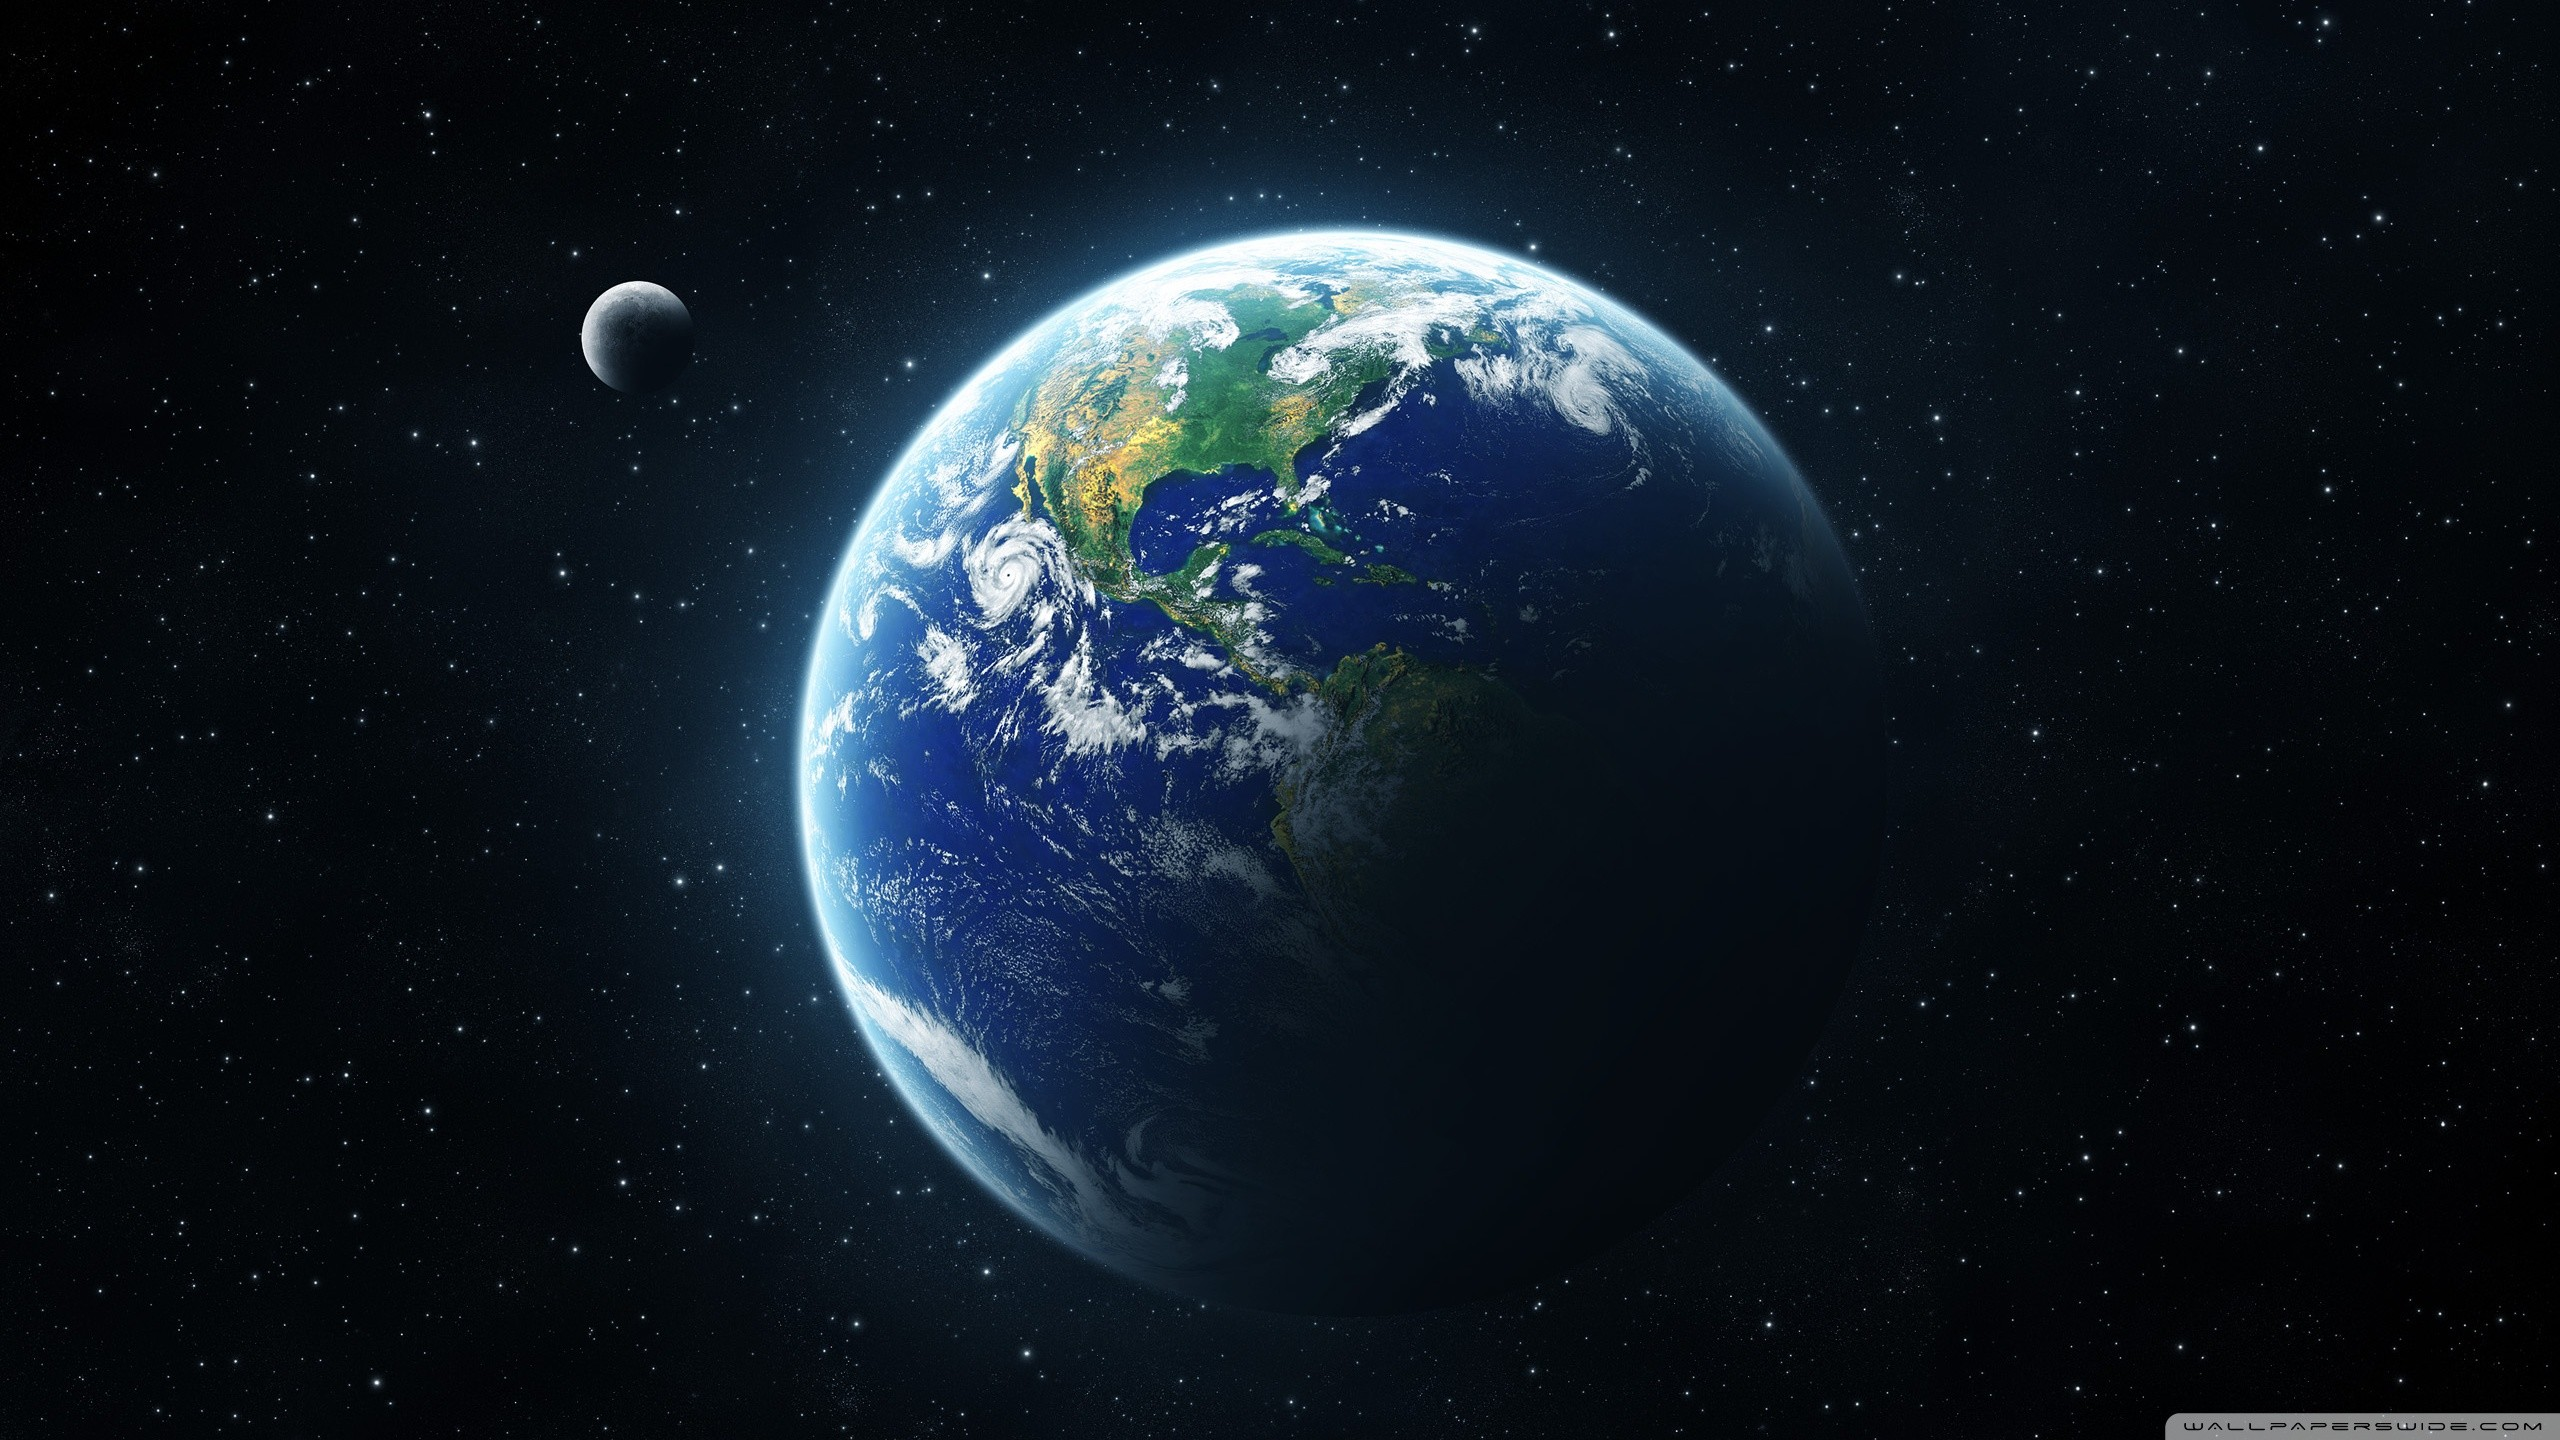 Earth Wallpaper High Resolution - Hd Wallpapers Space Earth , HD Wallpaper & Backgrounds